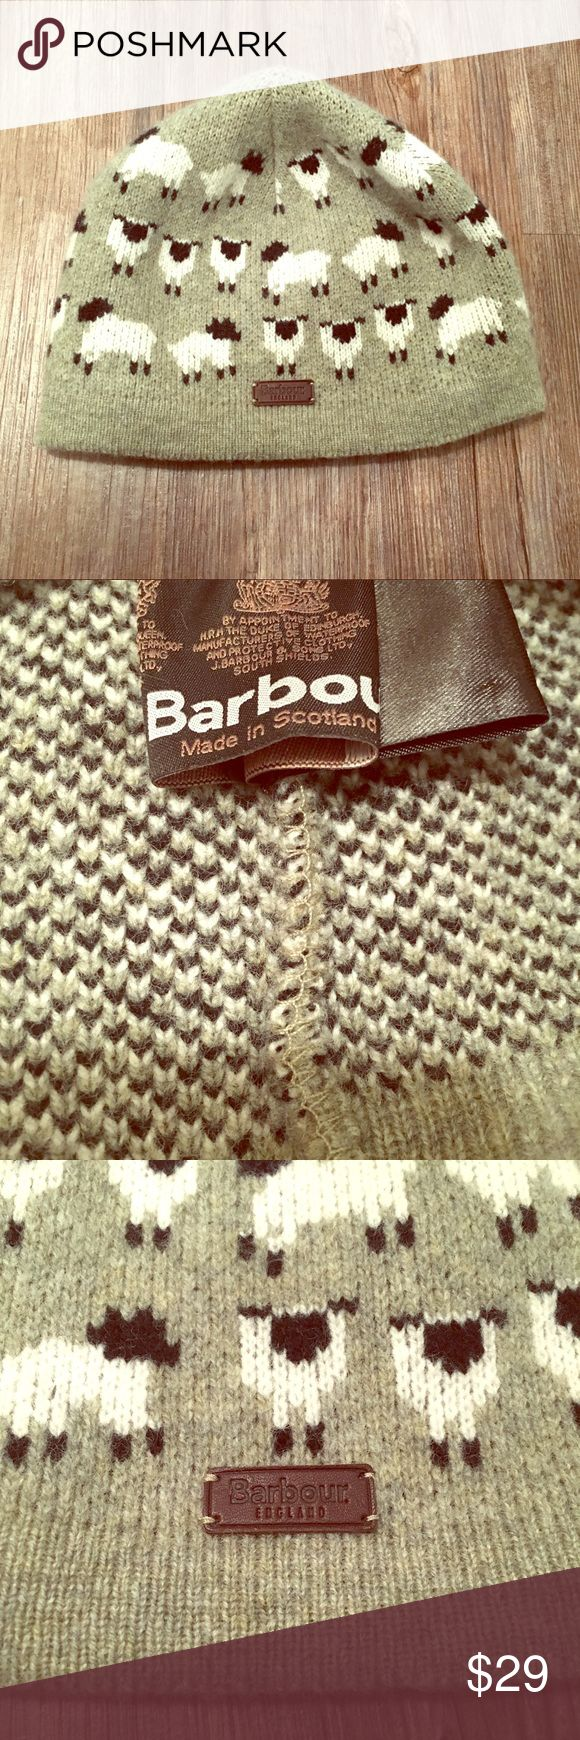 Barbour 100% Wool Beanie with Sheep 🐑 Cozy wool beanie with sheep pattern. The perfect gift for the sheep lover in your life. Like new—no defects!  📦 Bundle for a discount!  🏷 We accept all reasonable offers! Barbour Accessories Hats